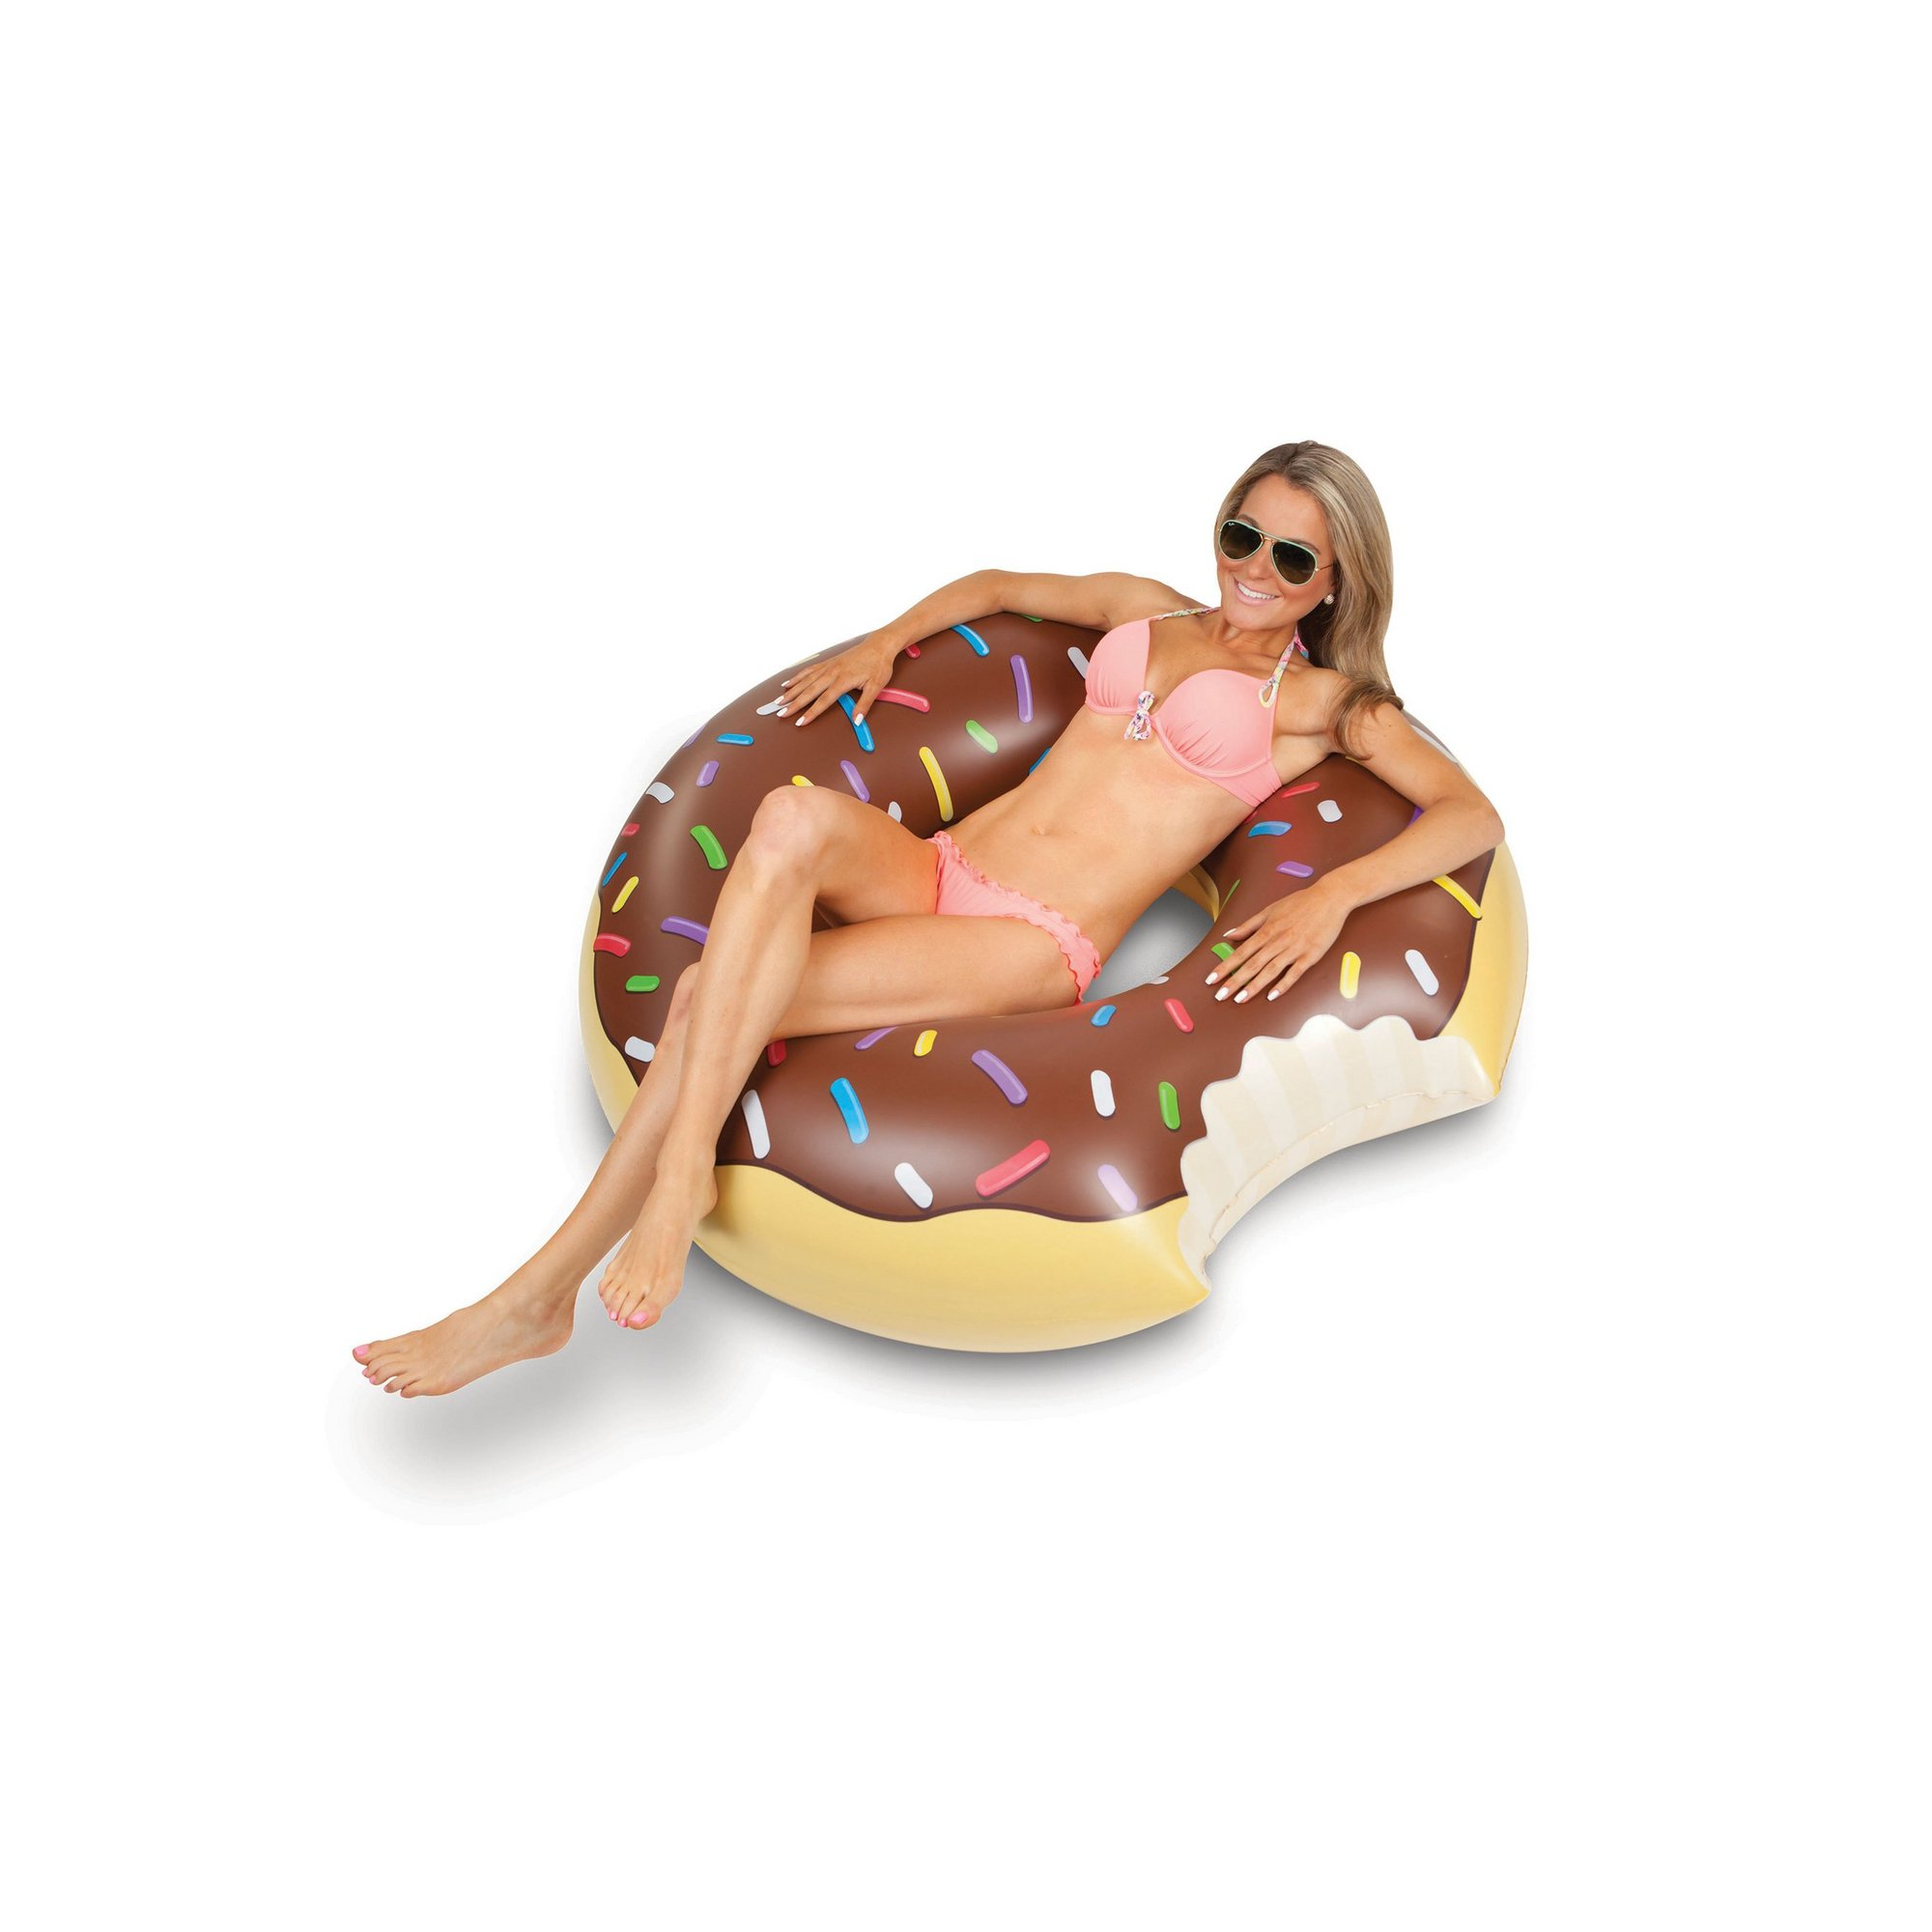 Image of Giant Chocolate Frosted Donut Pool Float